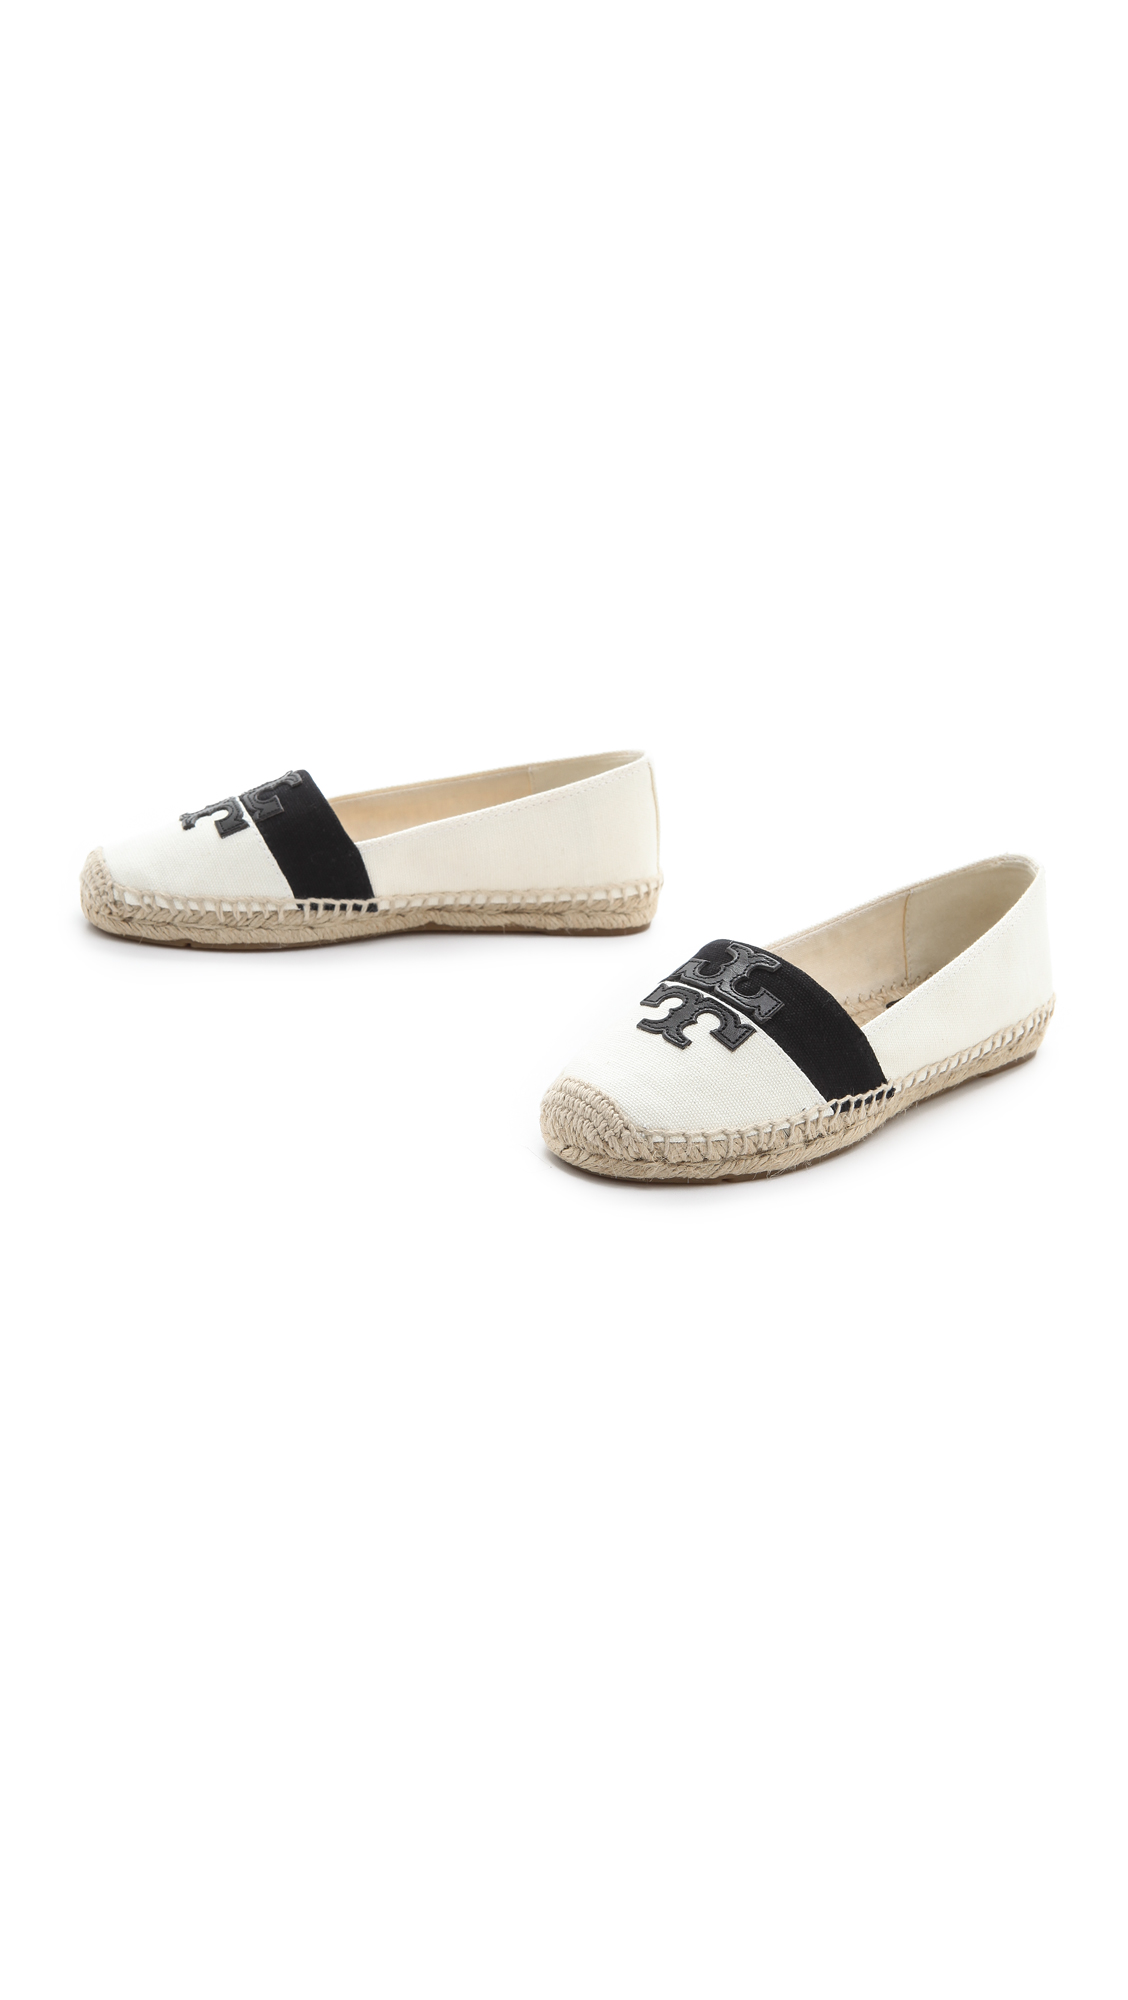 4fc1b252f93 Lyst - Tory Burch Weston Espadrilles in White